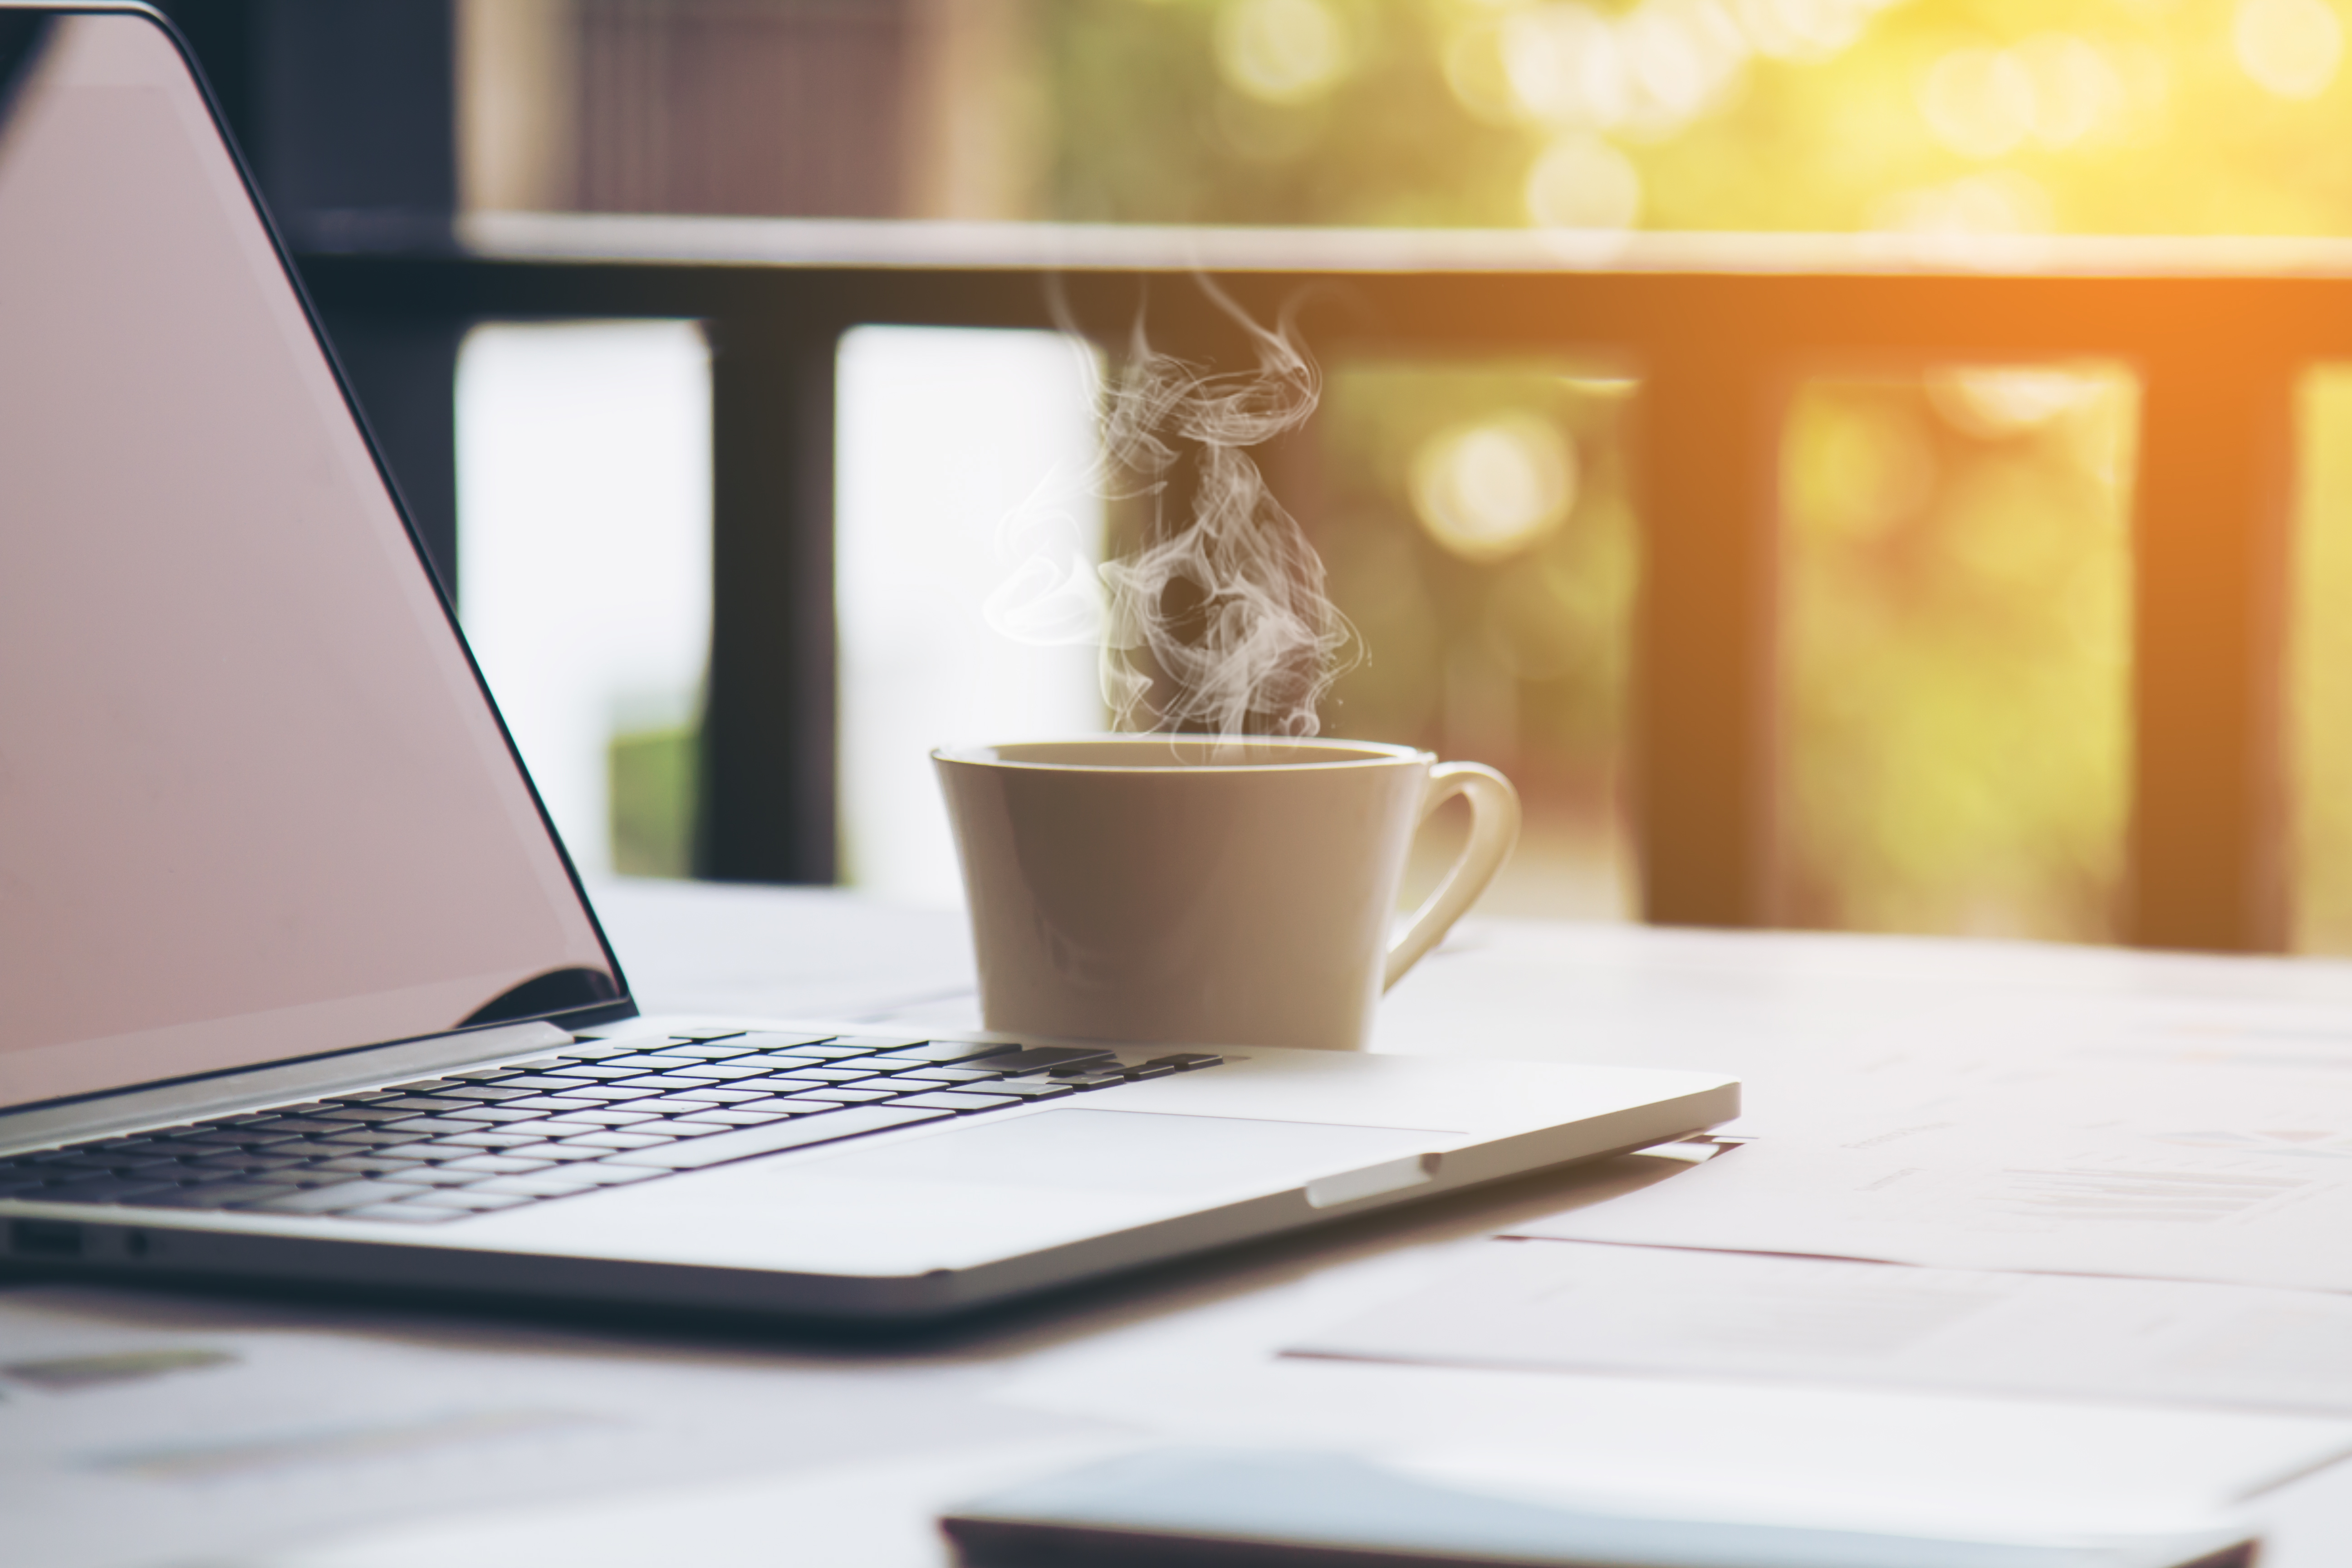 Hot coffee next to a mac laptop in sunlight morning